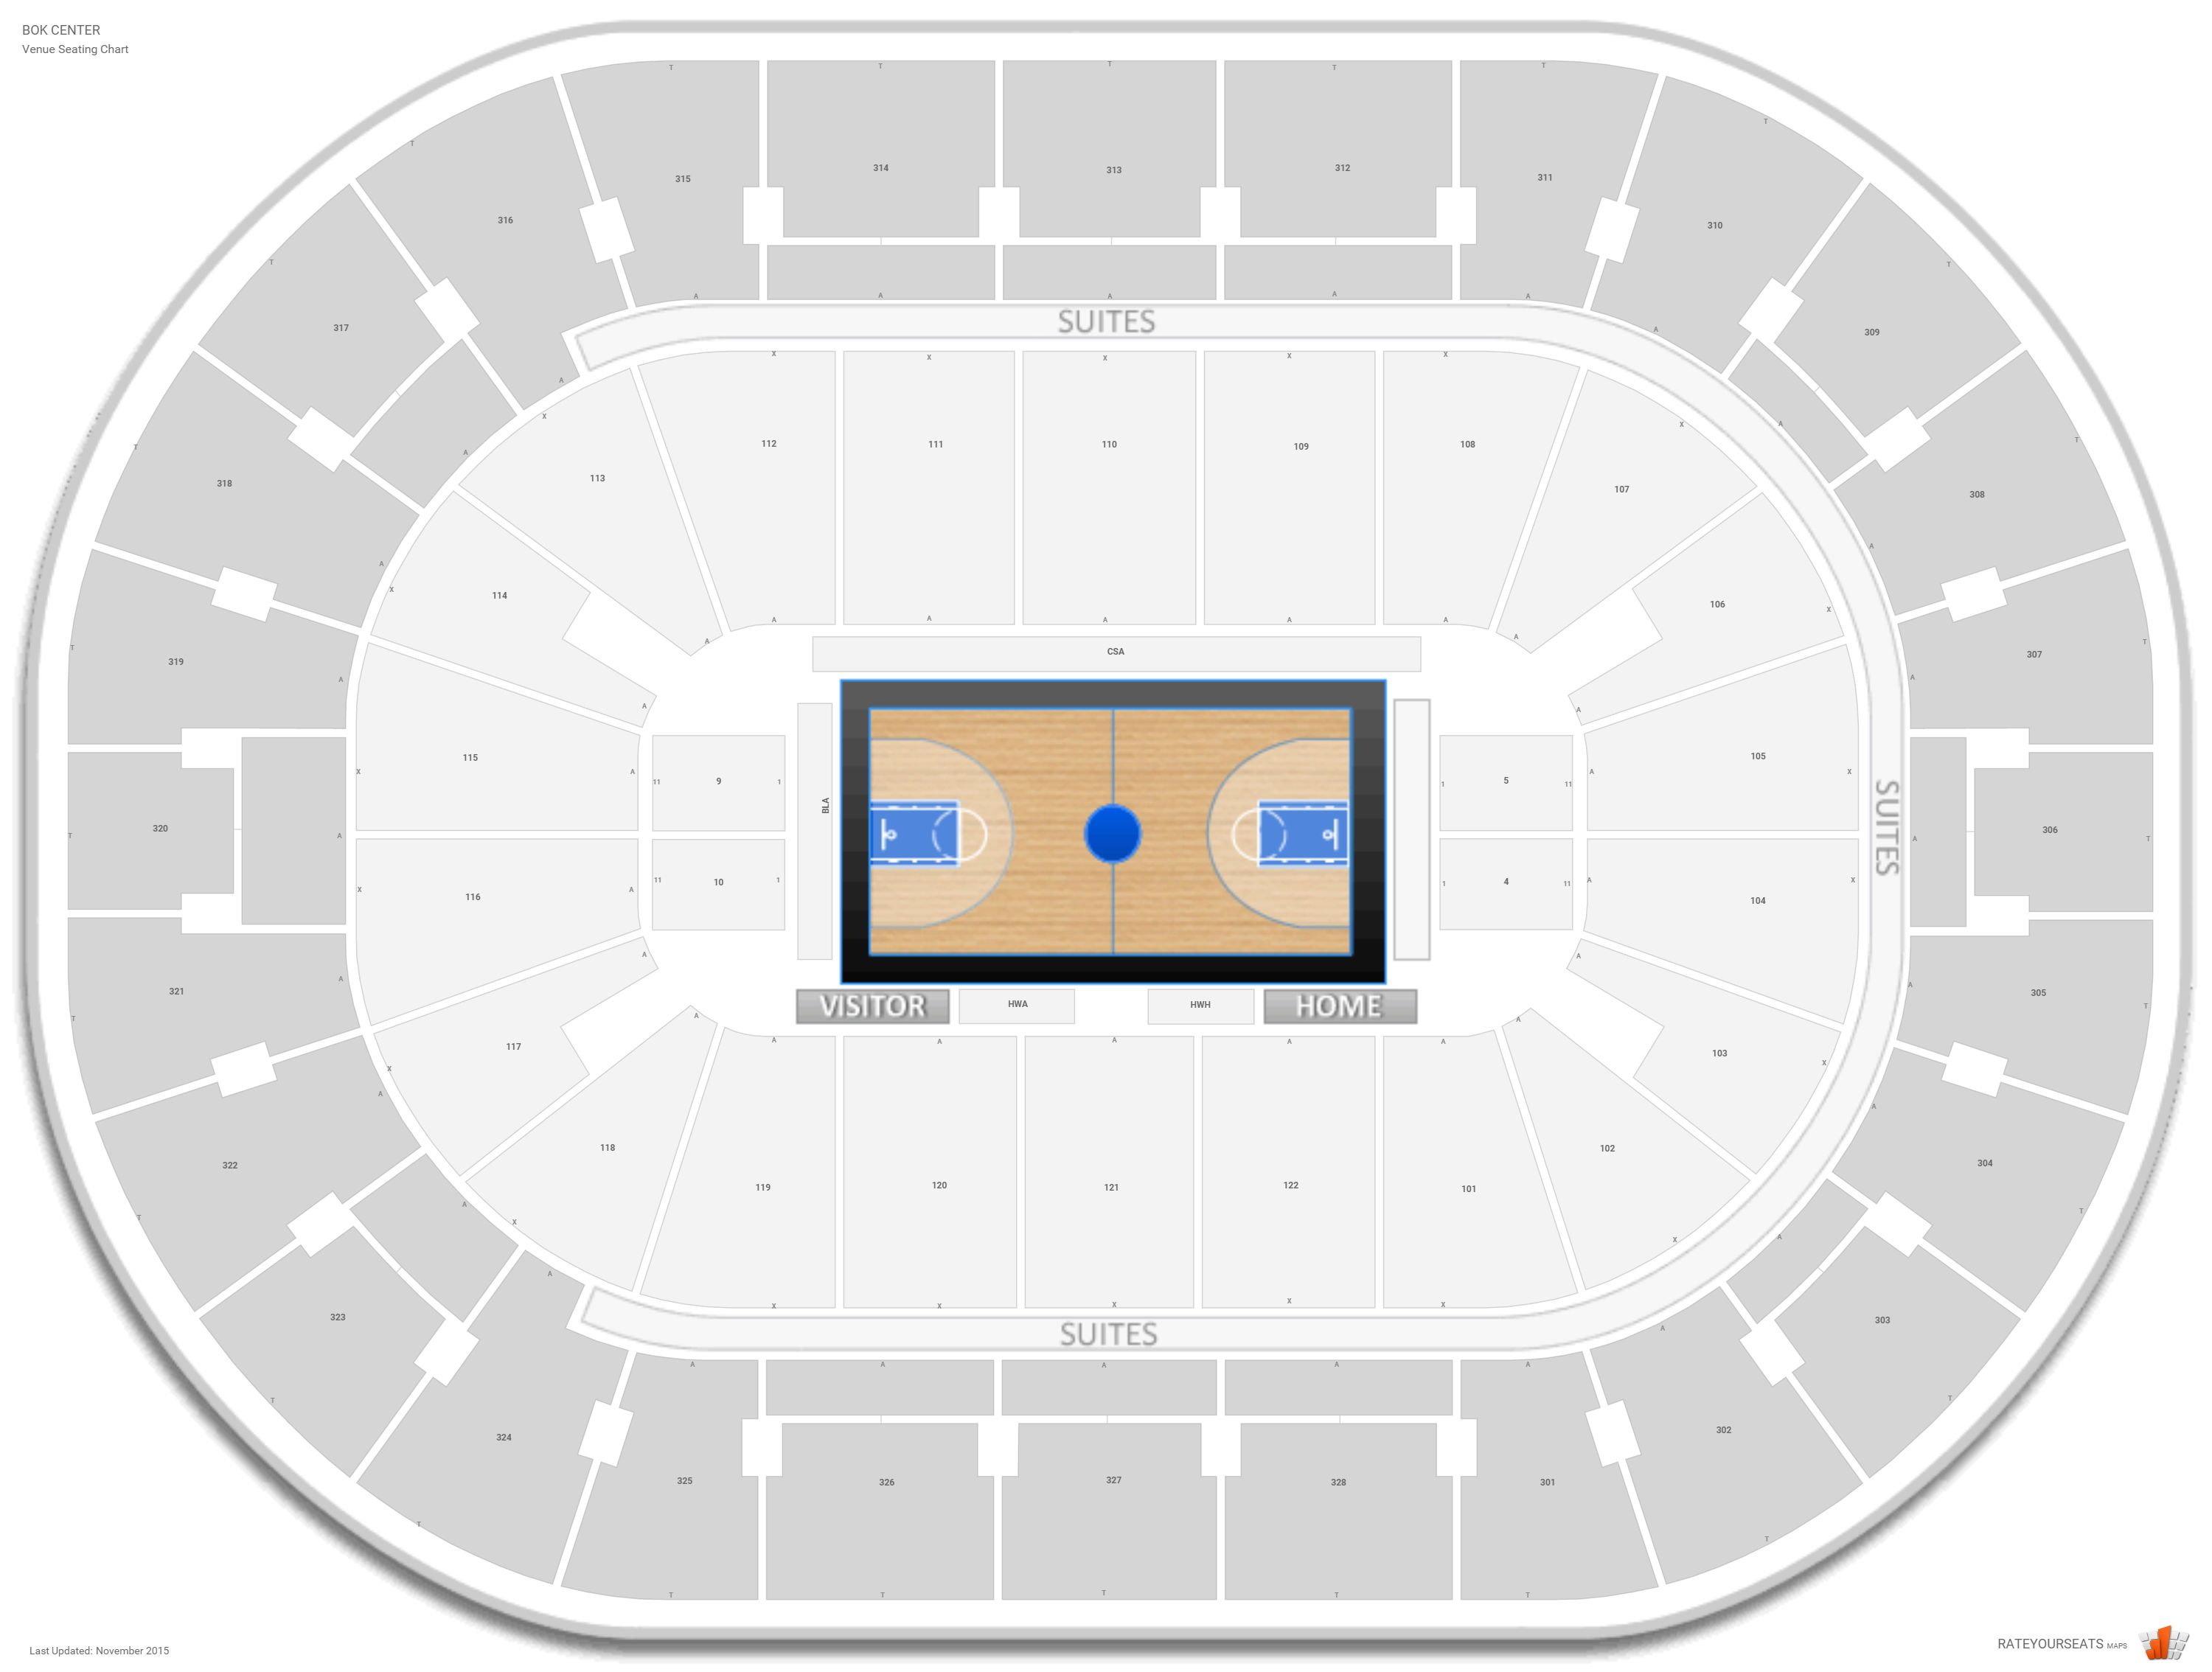 Bok center basketball seating guide rateyourseats com